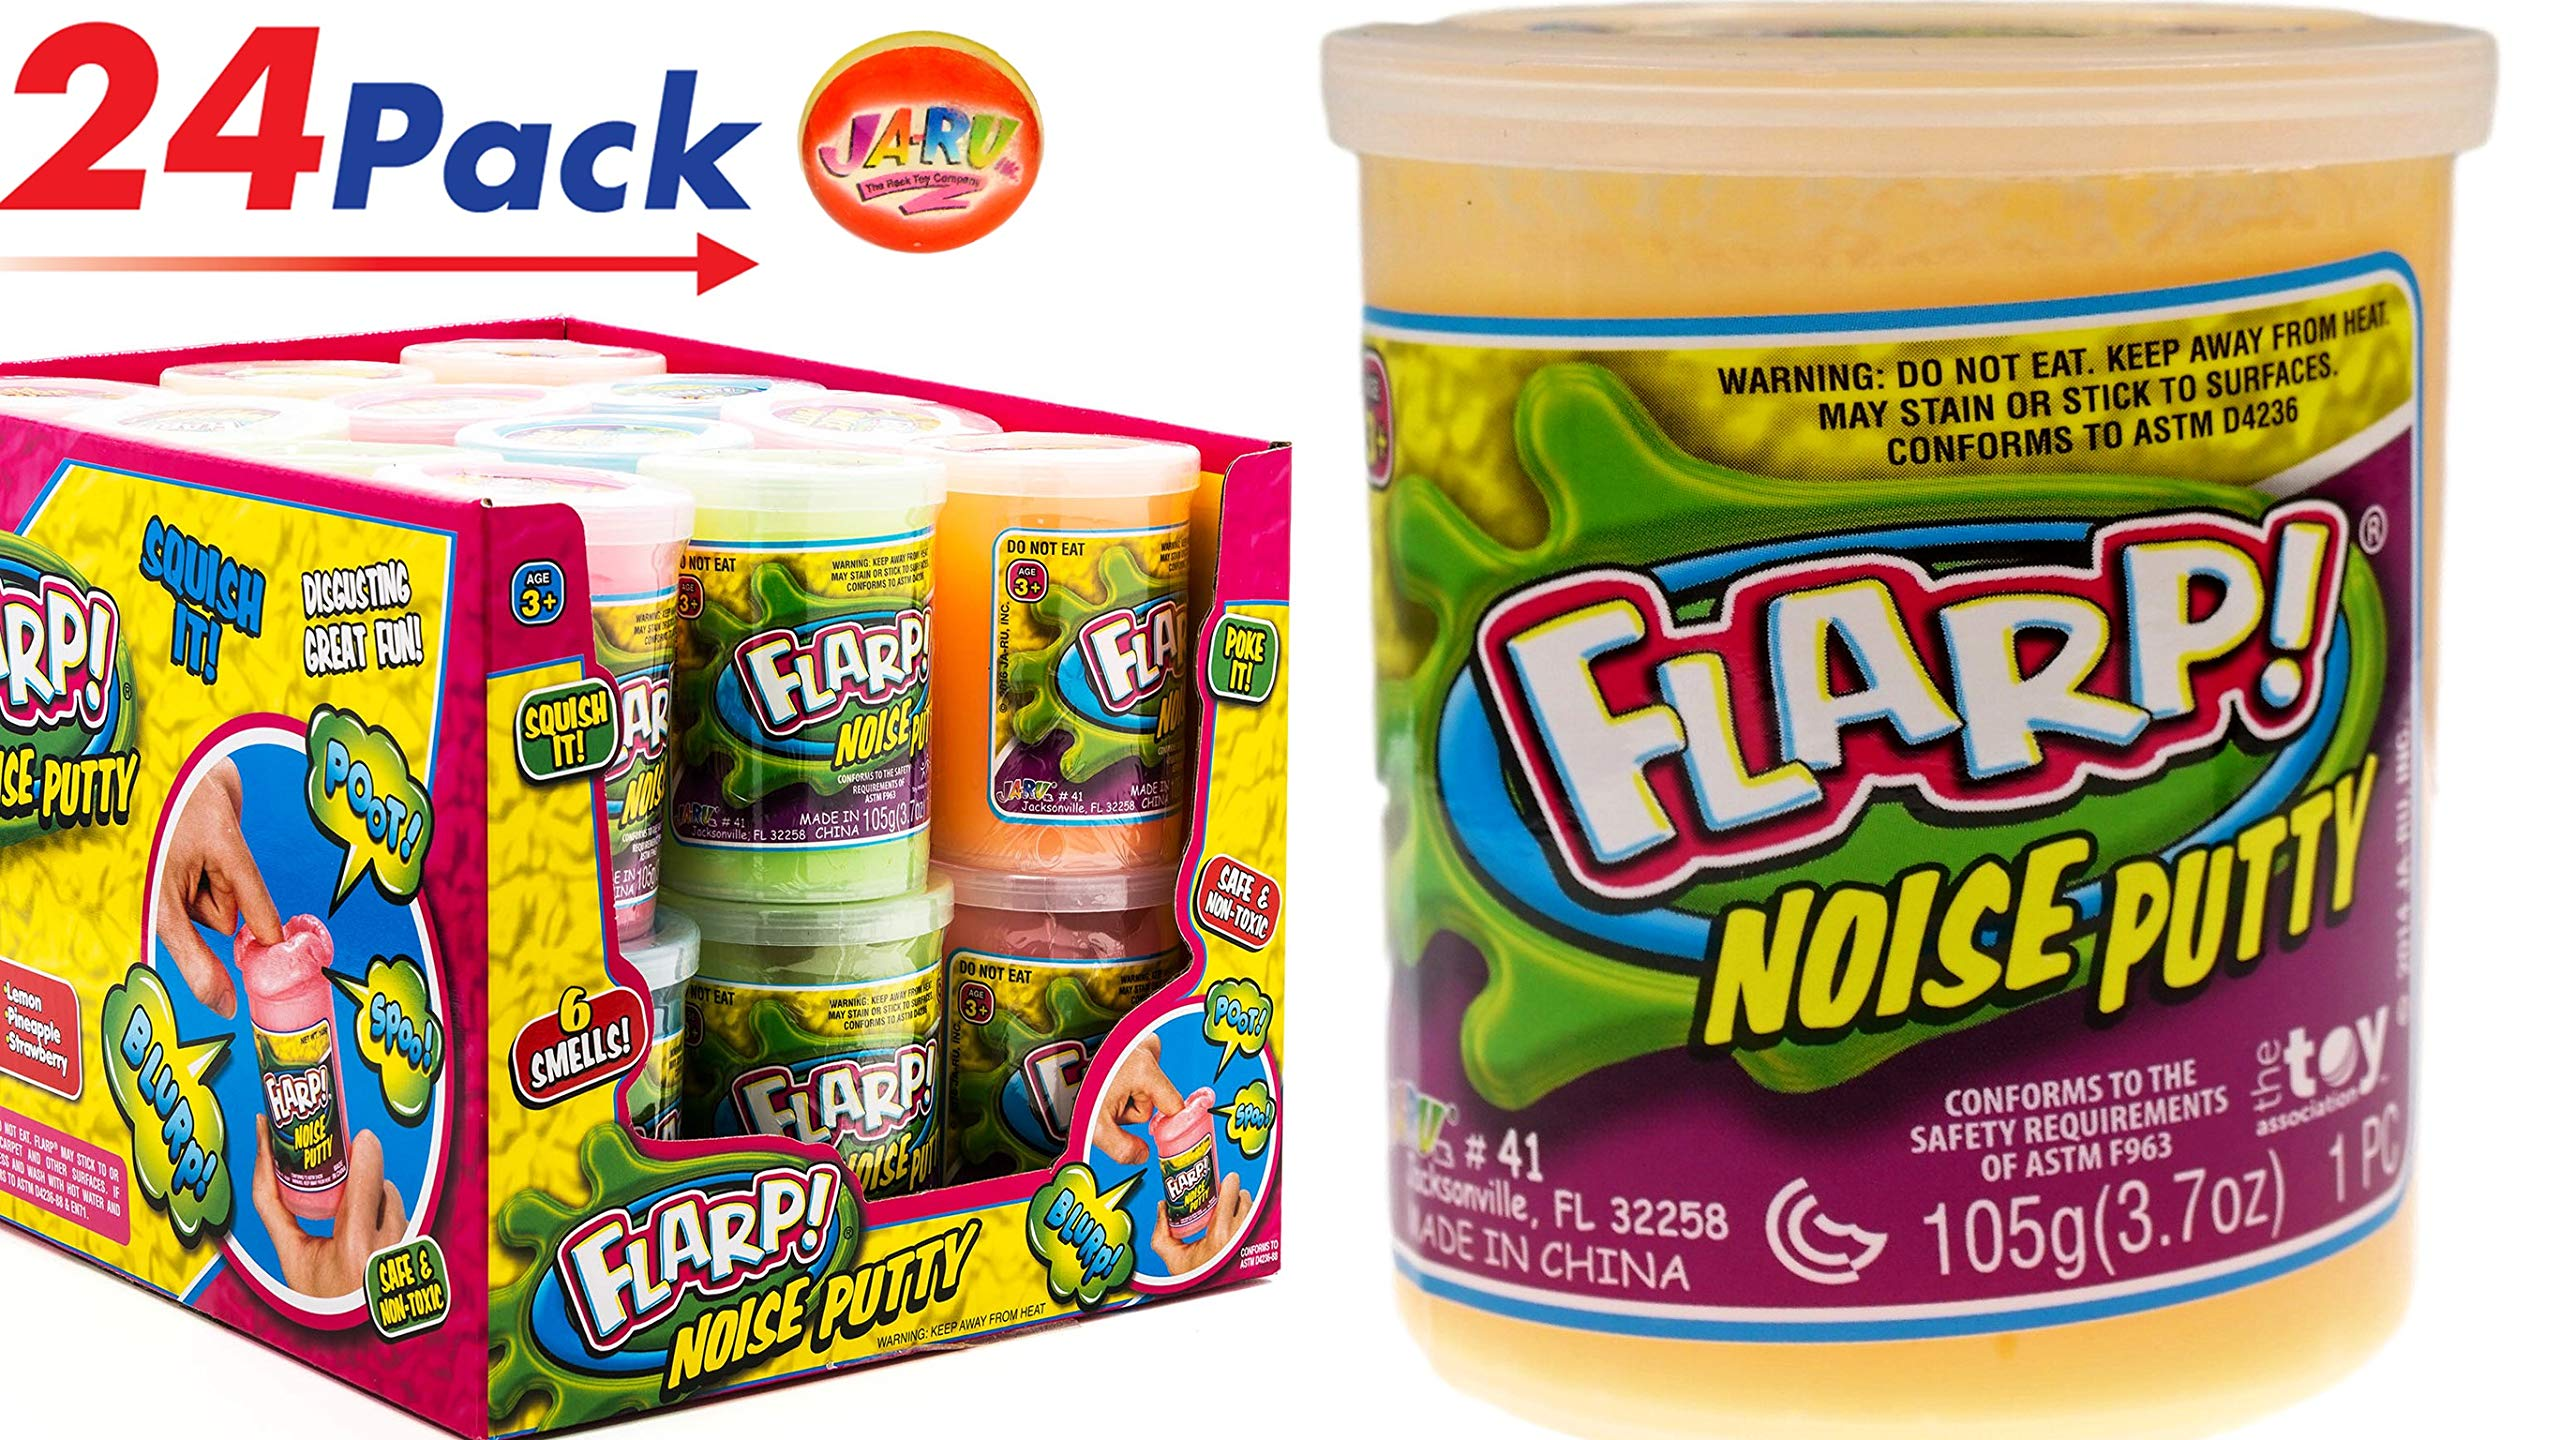 JA-RU FLARP Noise Putty Fart (Pack of 24 Units in Display Box) Plus 1 Bouncy Ball Squish to Make Farting Sounds | Item #10041-24